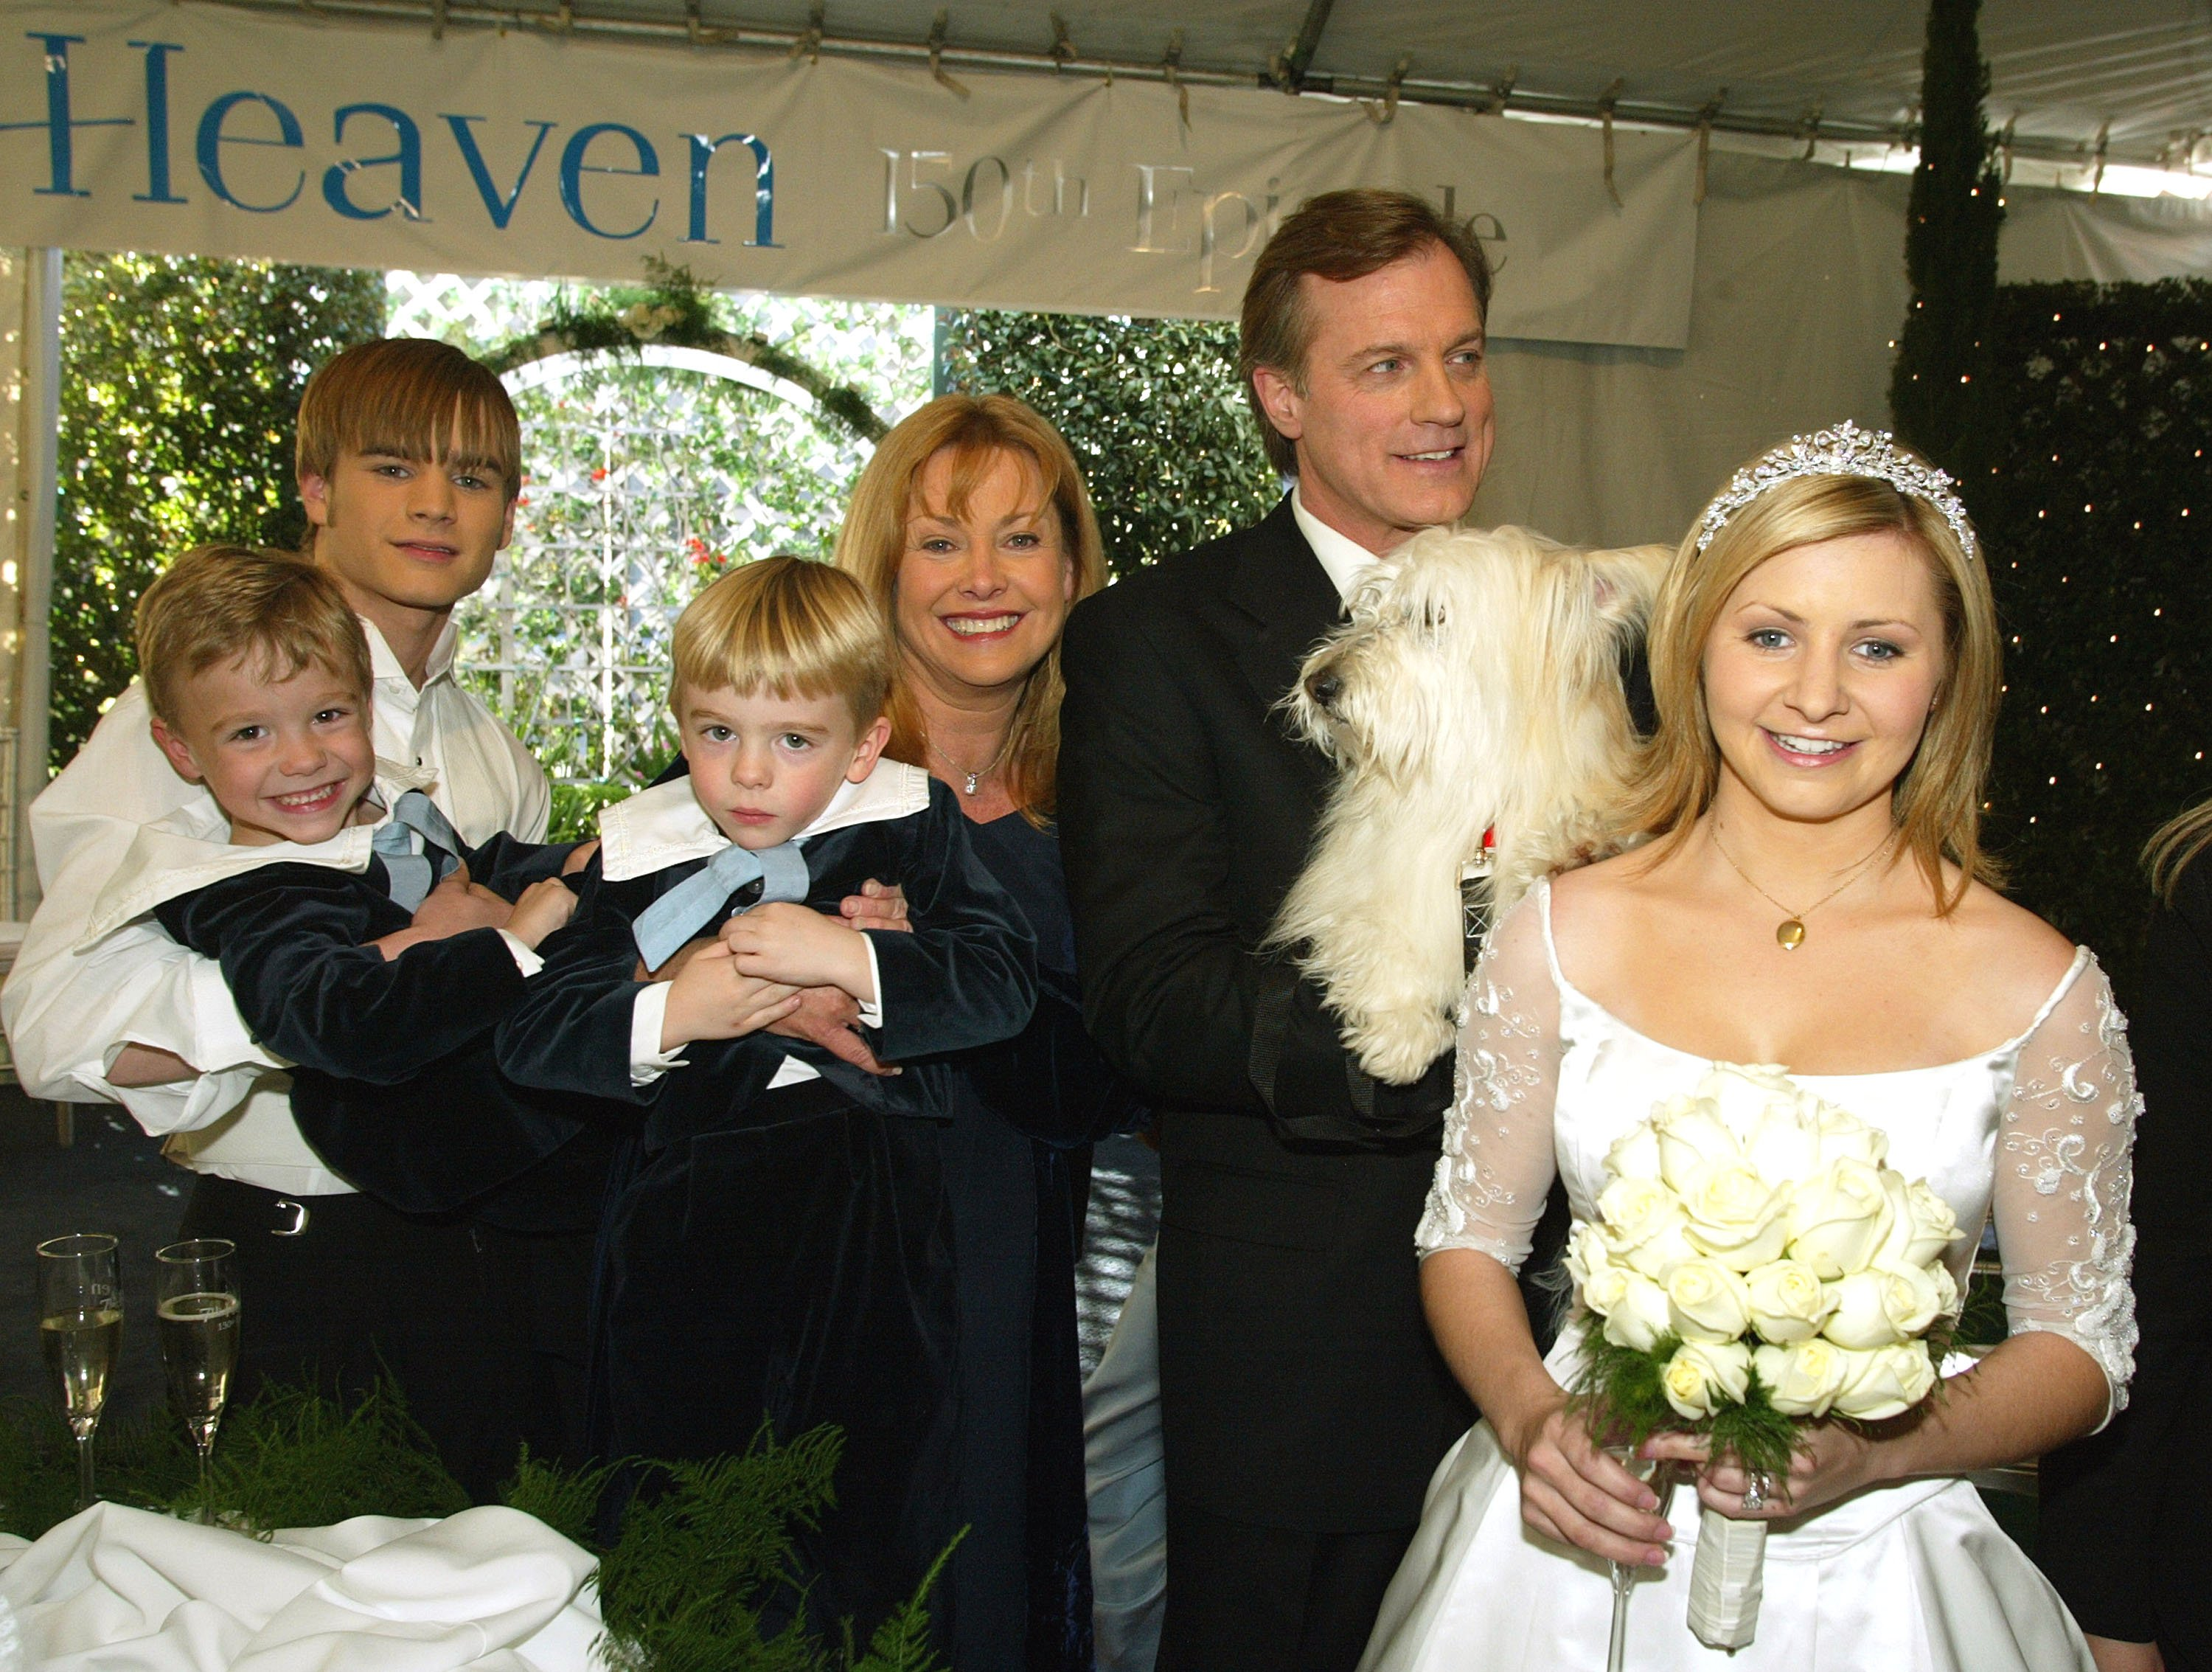 """David Gallagher, twins Lorenzo and Nikolas Brino, Catherine Hicks, Stephen Collins and Beverley Mitchell posing at a reception to celebrate 150 episodes of """"7th Heaven"""" in Los Angeles, California   Photo: Kevin Winter/Getty Images"""